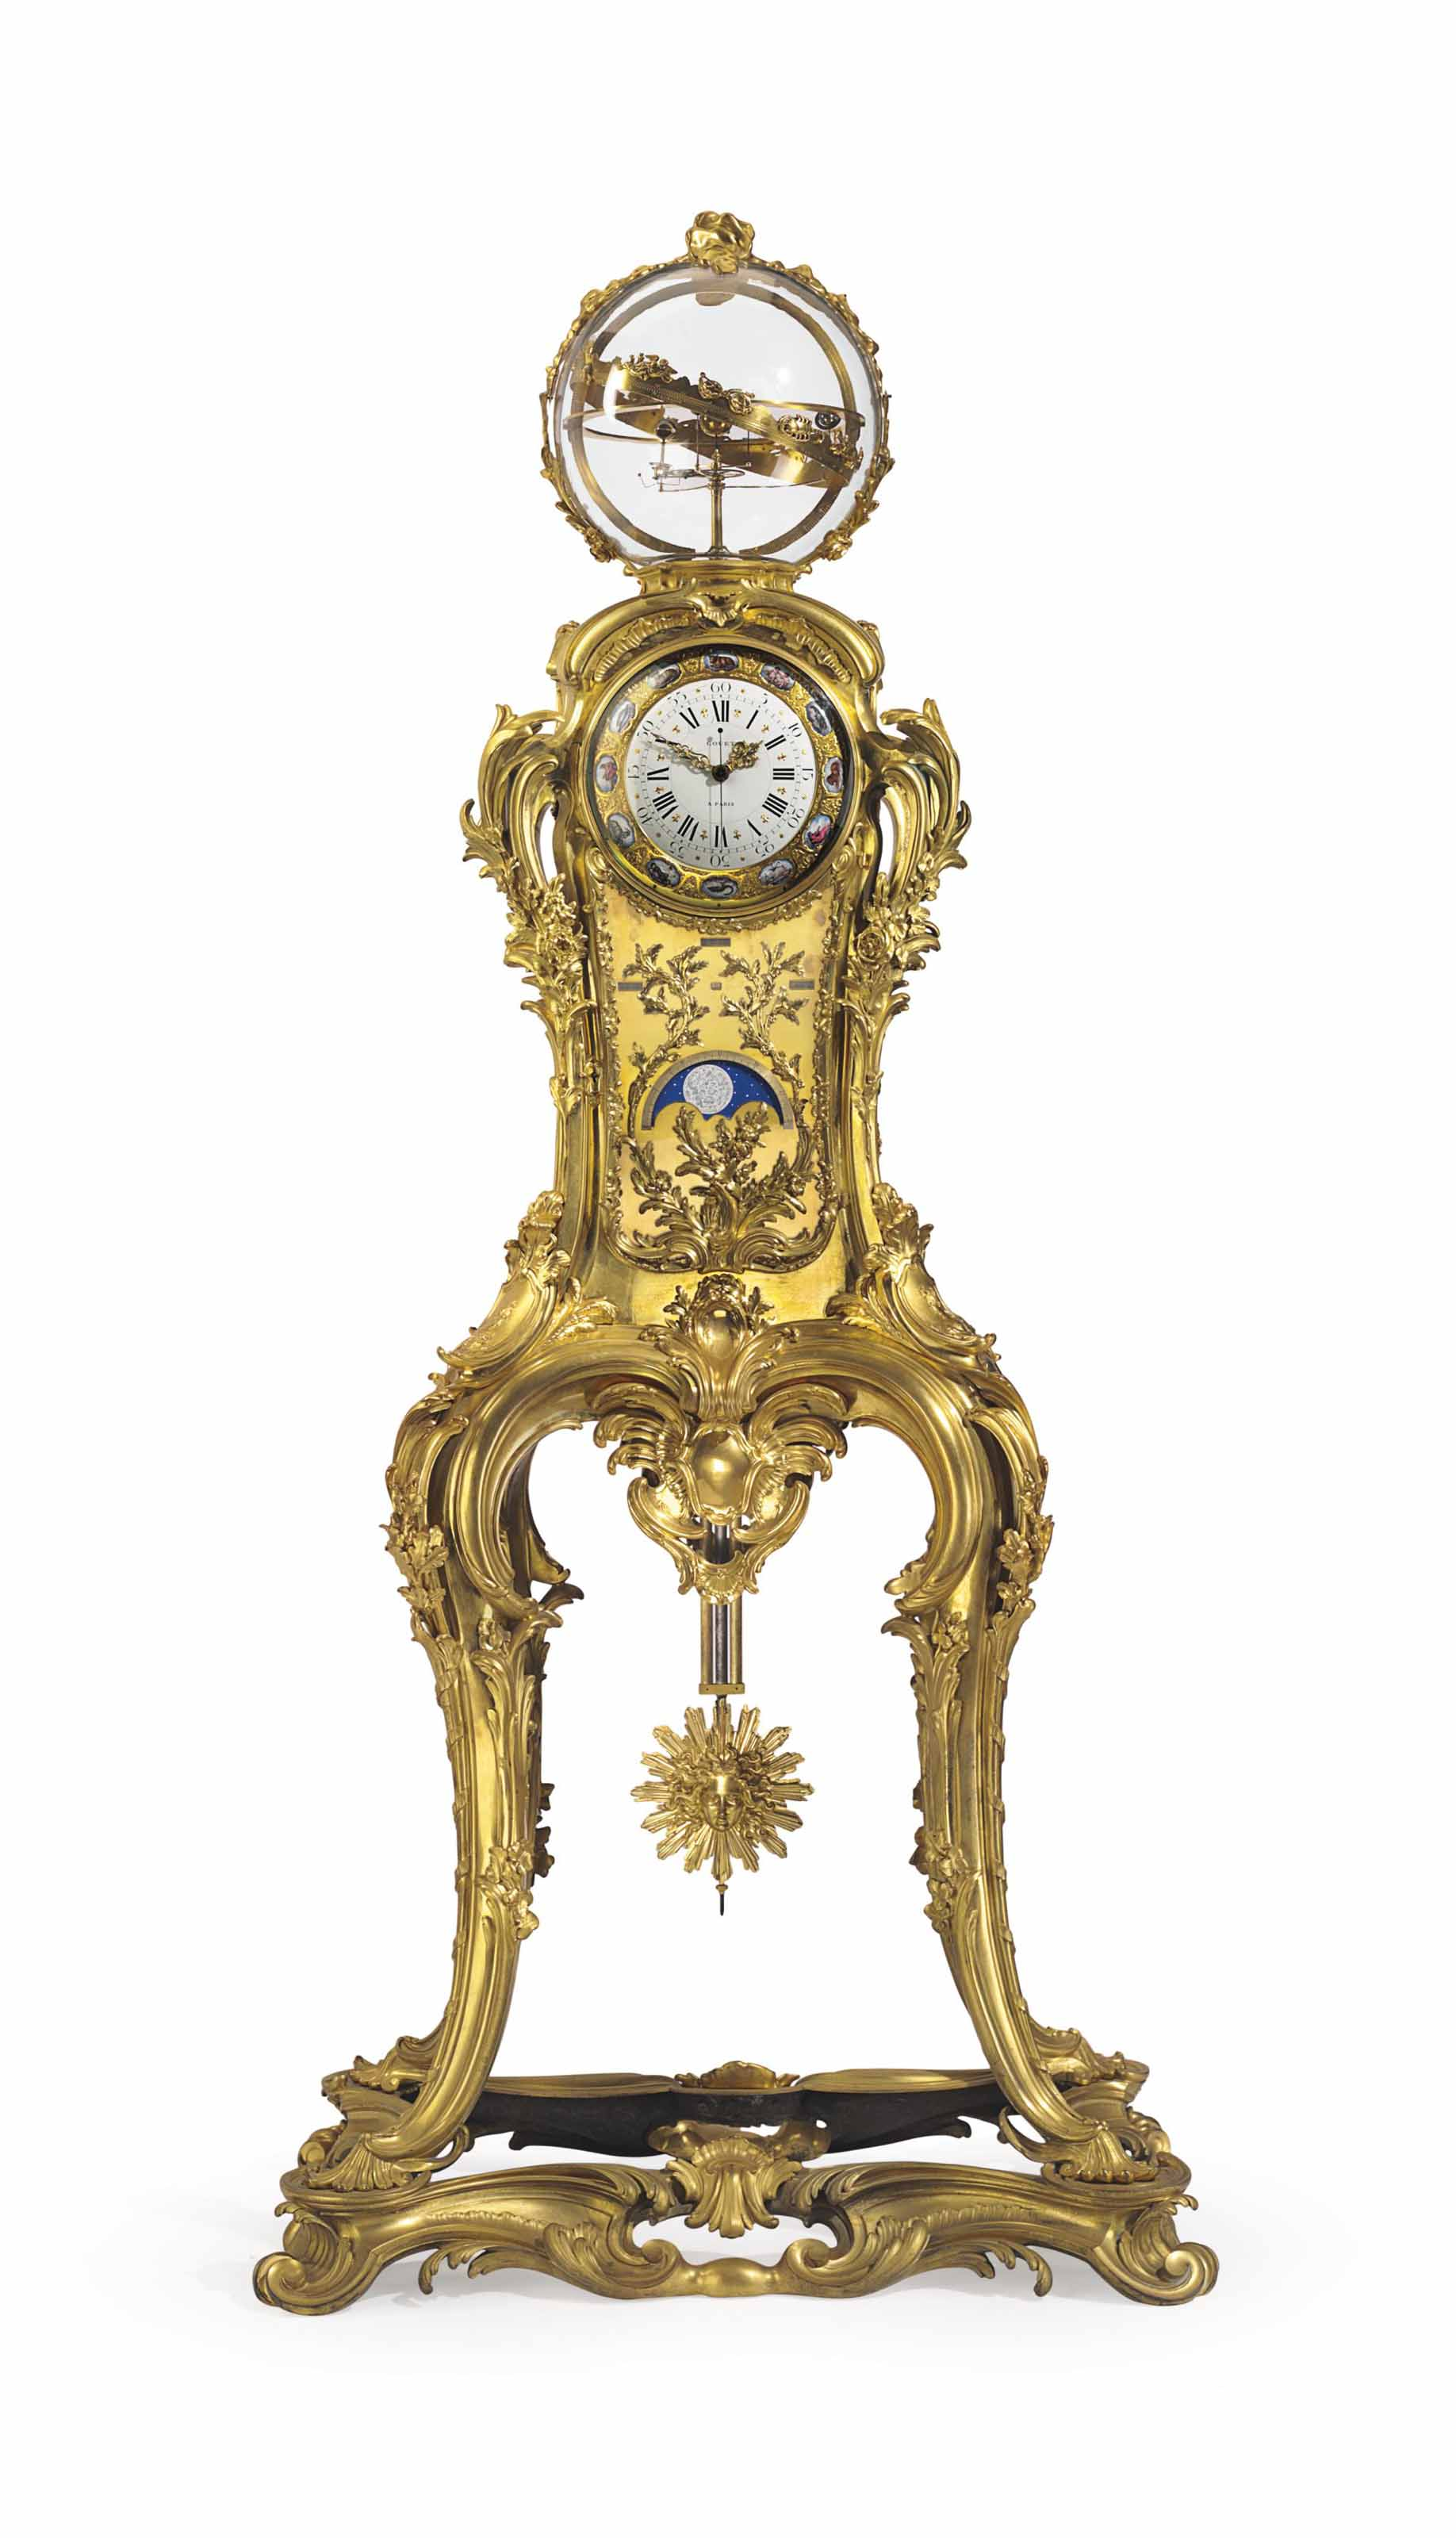 AN IMPORTANT FRENCH ORMOLU ASTRONOMICAL CLOCK